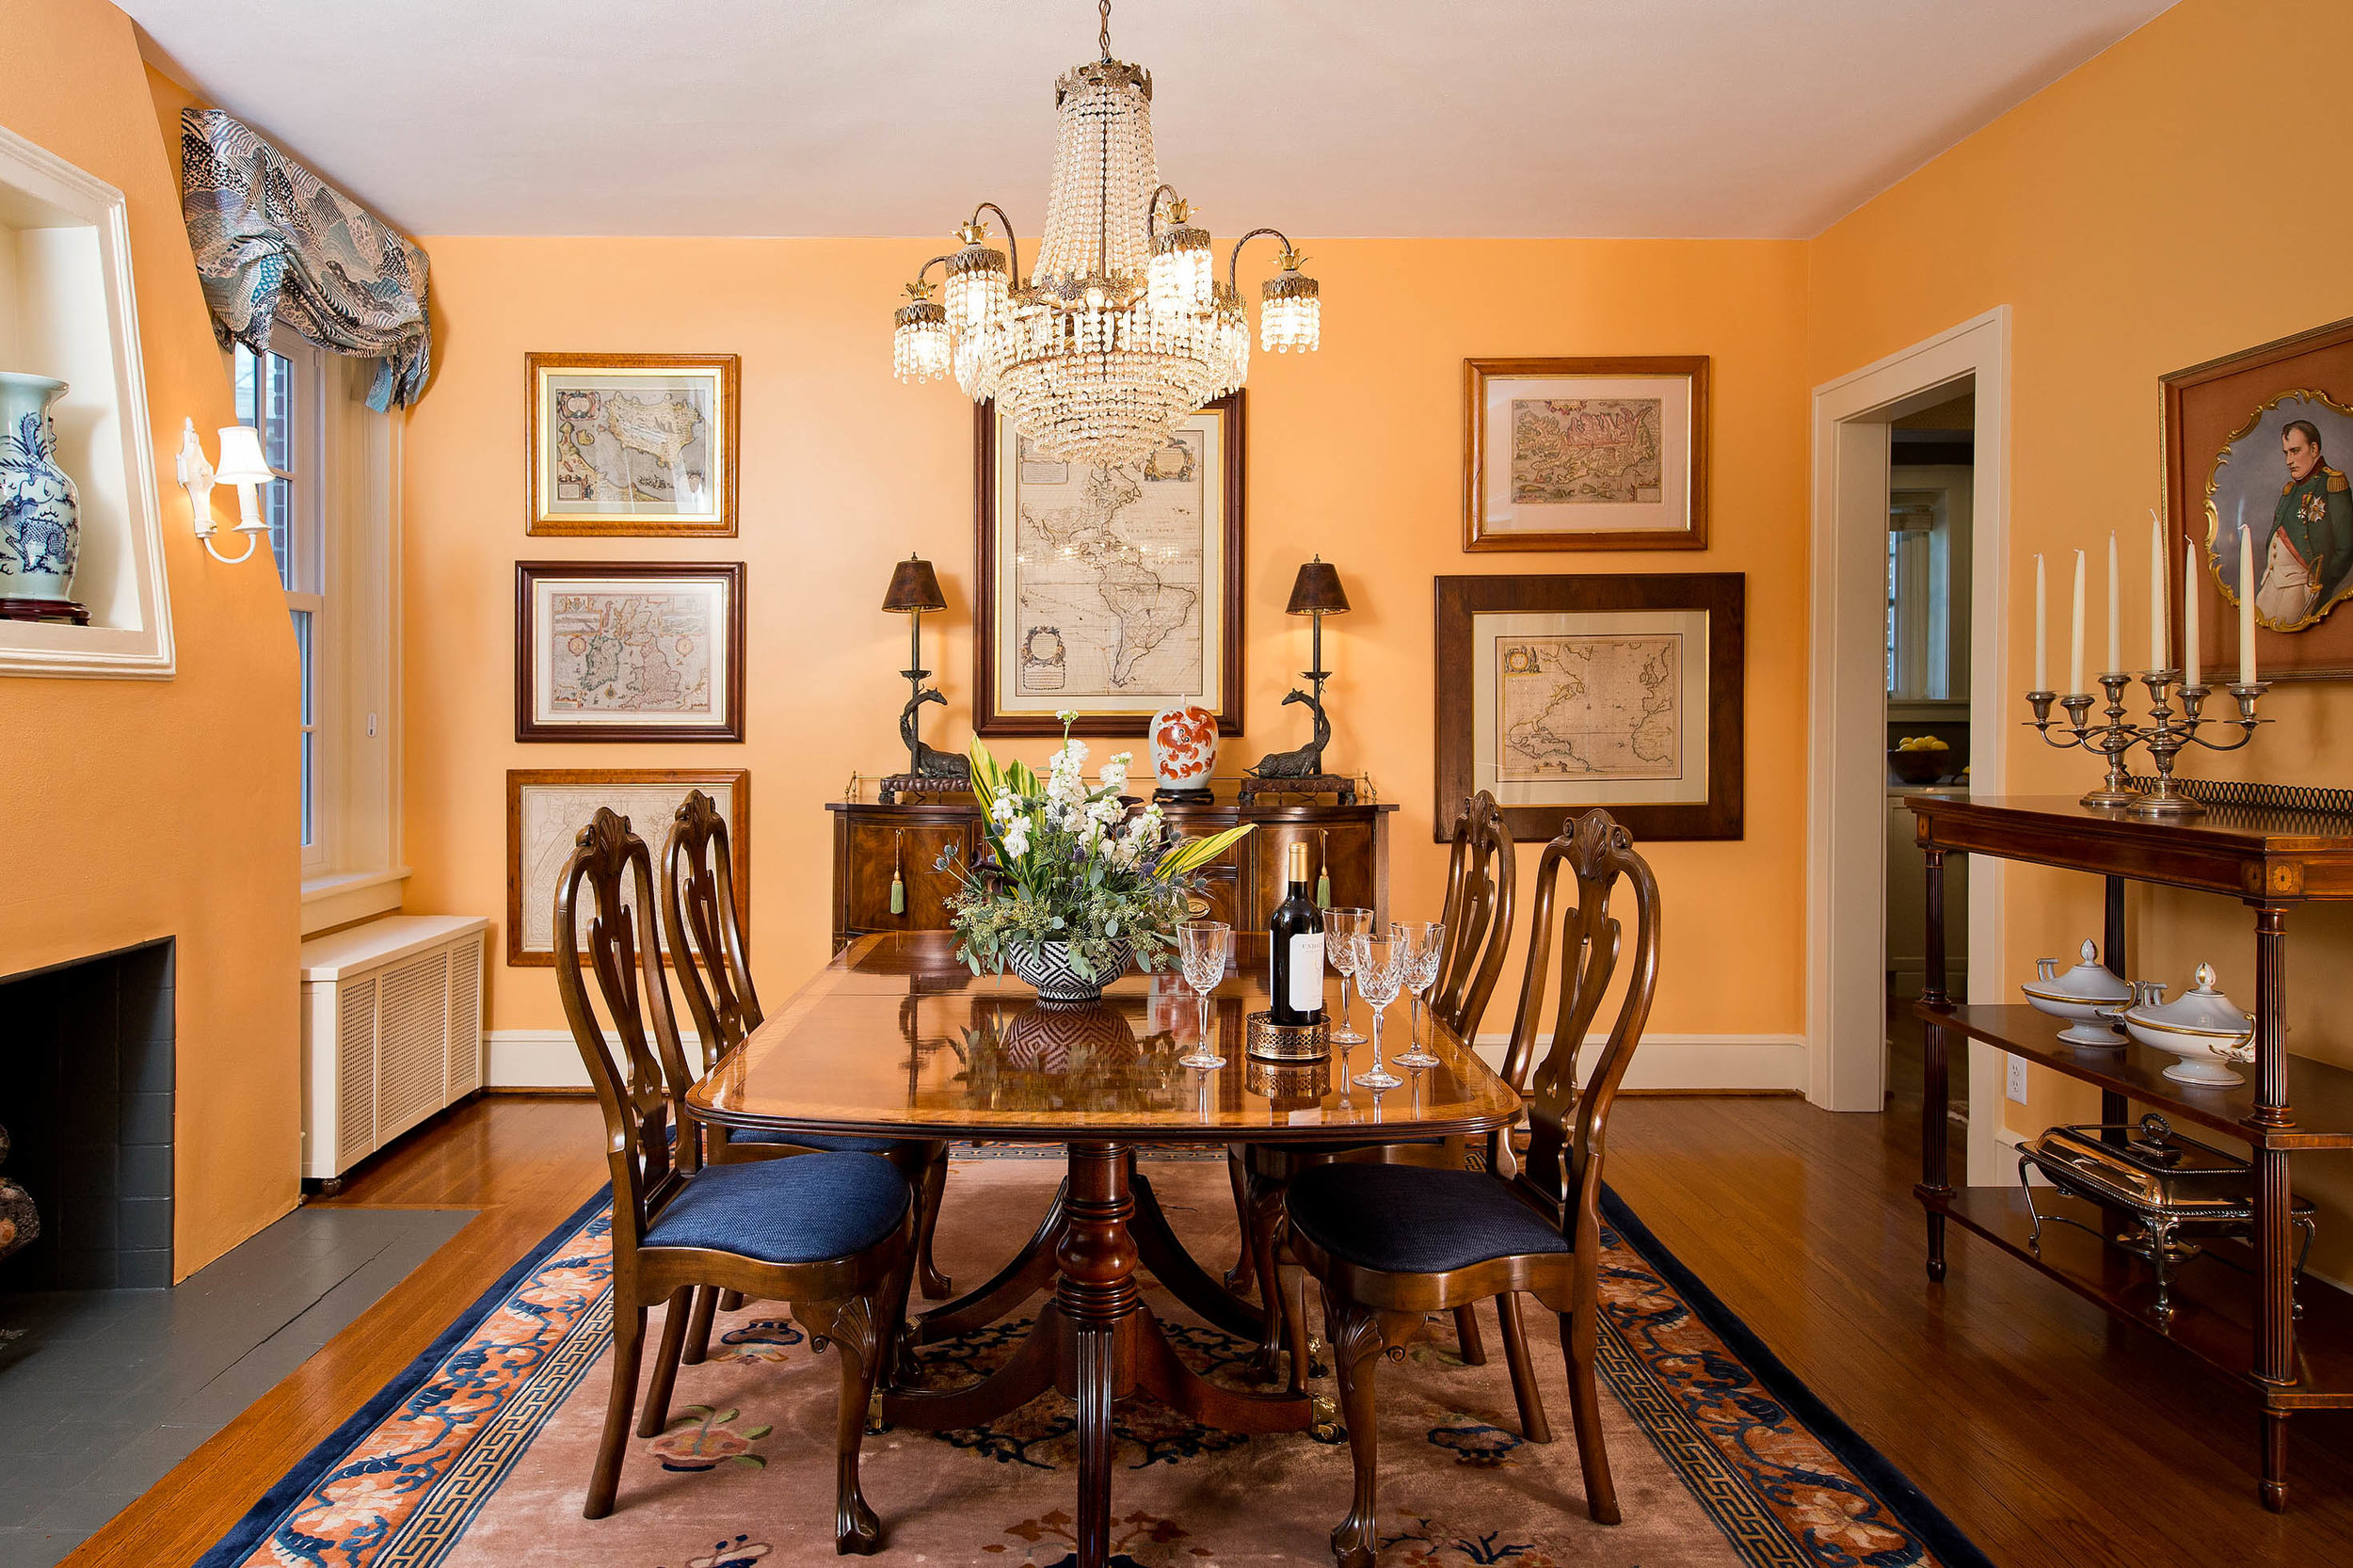 In a perfect meld of rich wood tones and playful colors and patterns, this dining room is ready for any occasion.